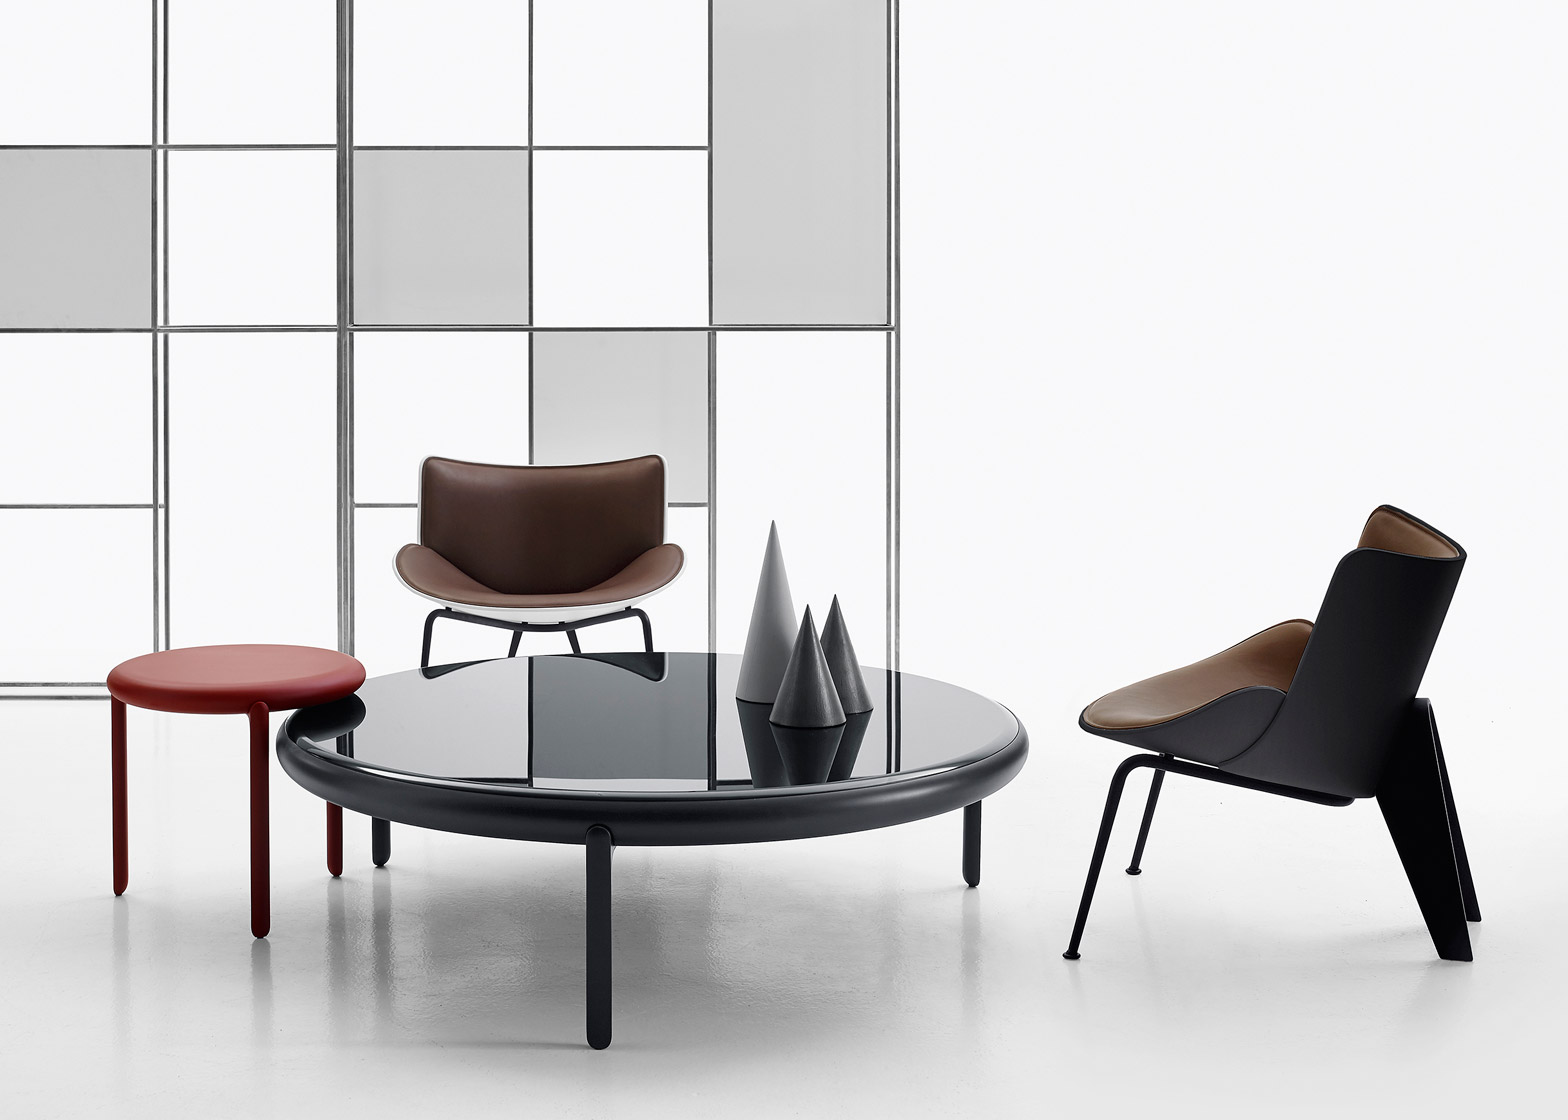 B&B Italia products by Doshi Levien and Naoto Fukasawa